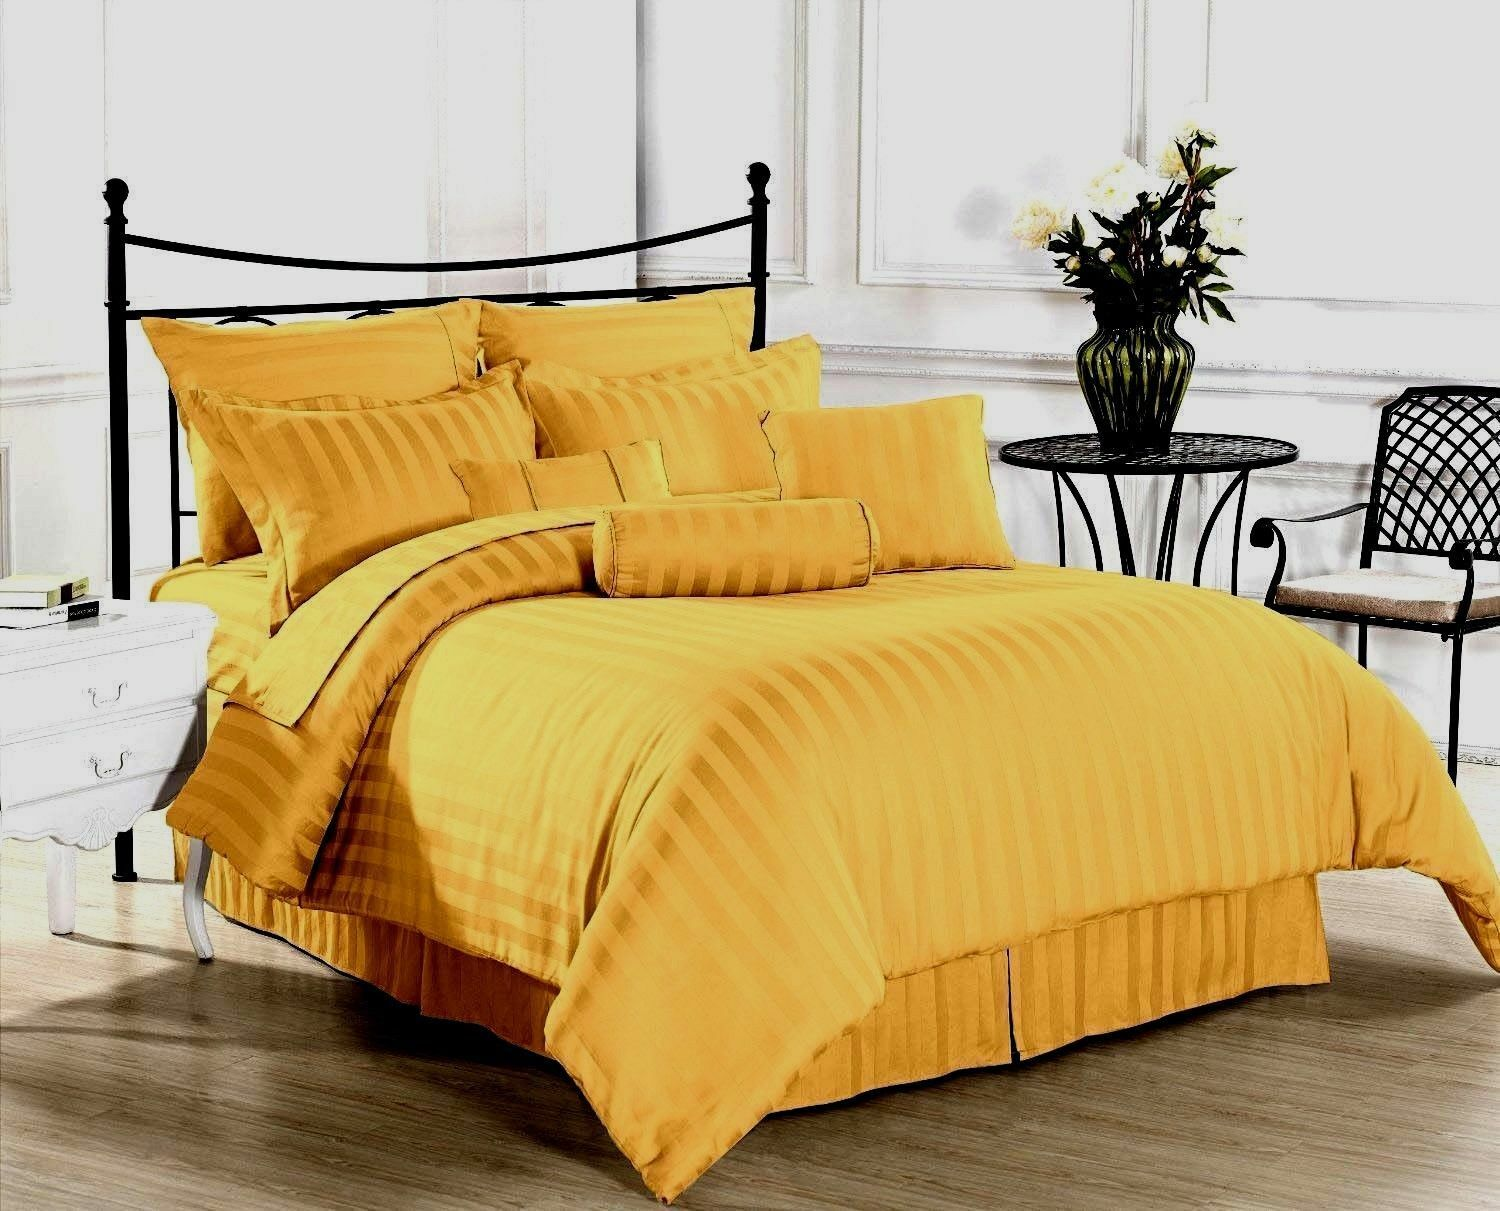 1000 Thread Count Egyptian Cotton Scala Bedding Items All US Sizes gold Striped